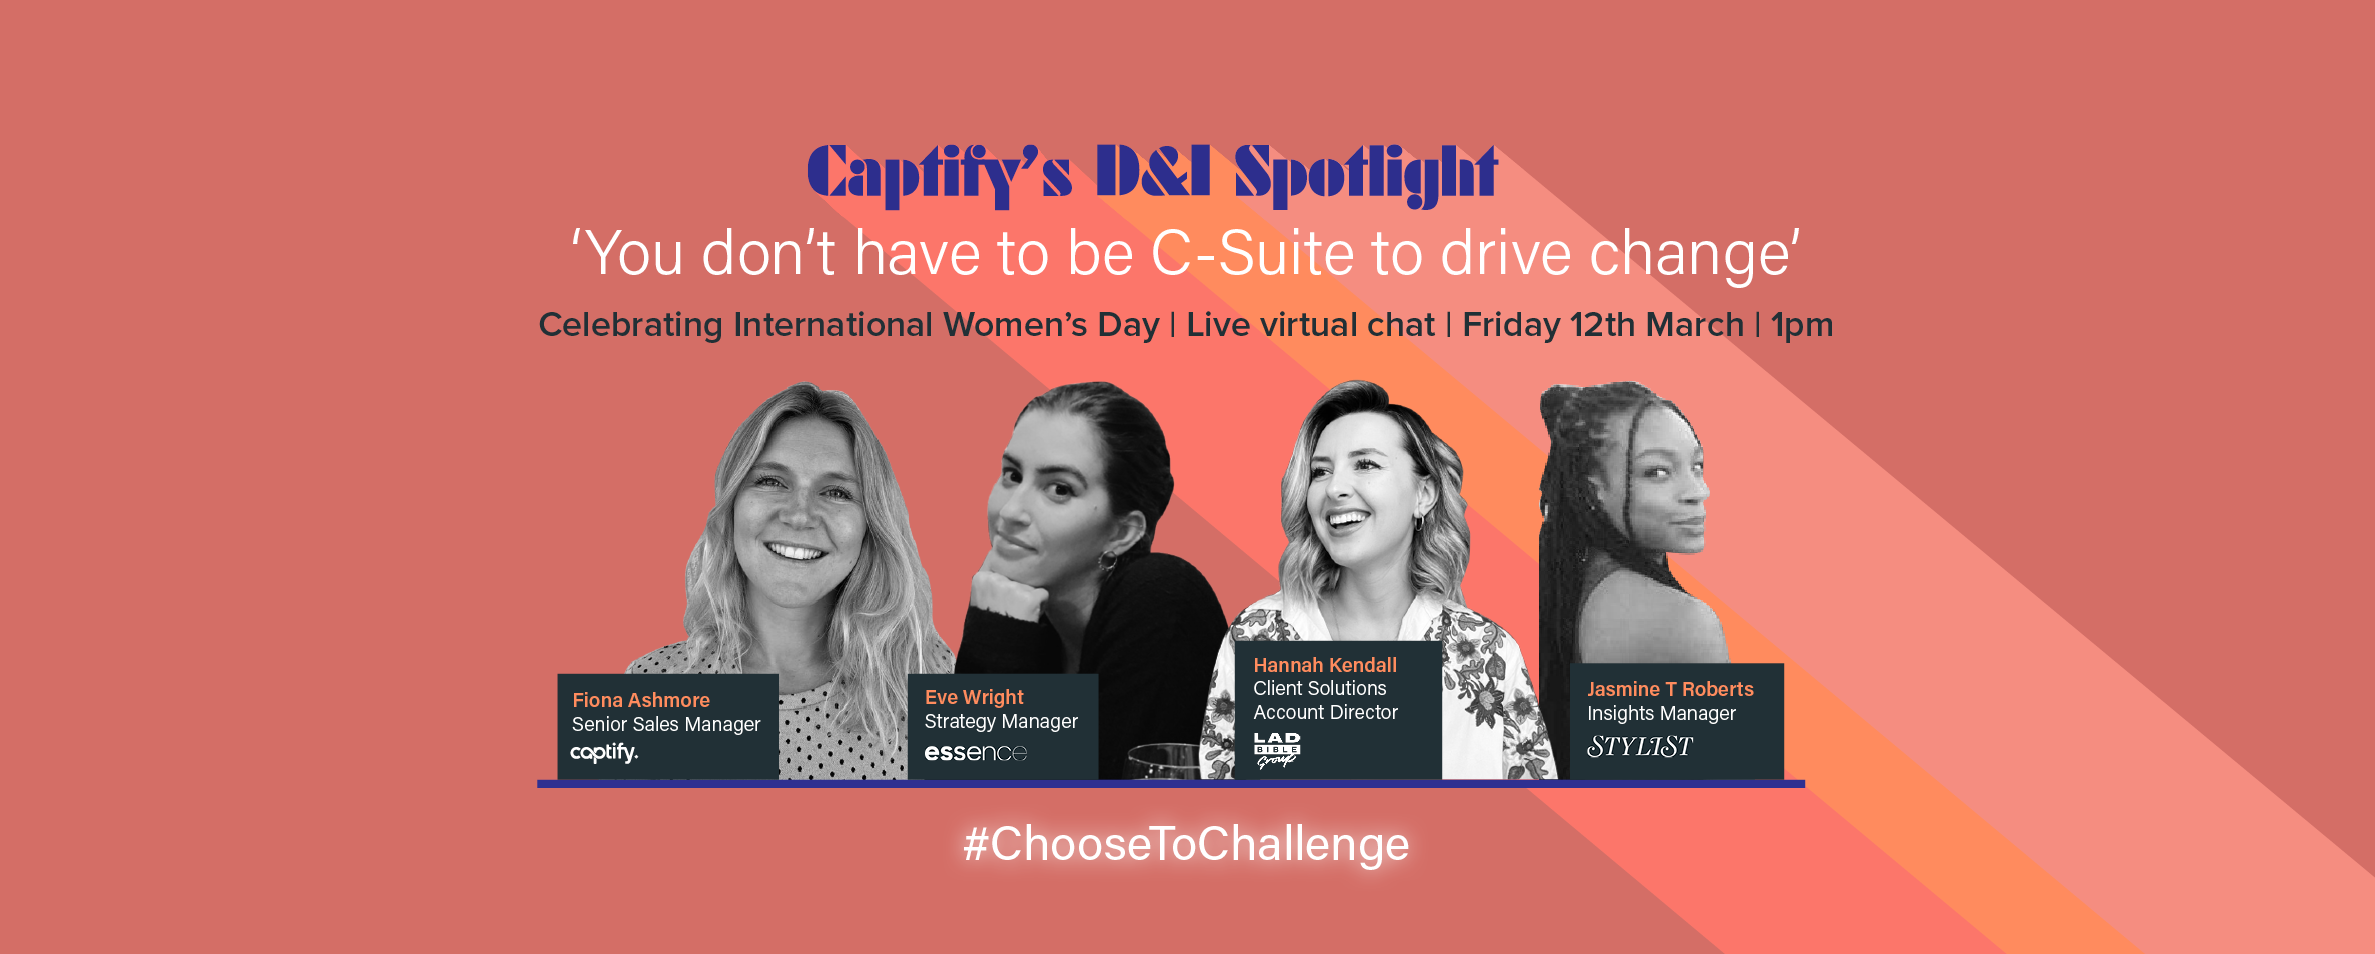 Captify's D&I Spotlight Event: 'You don't have to be C-Suite to drive change'